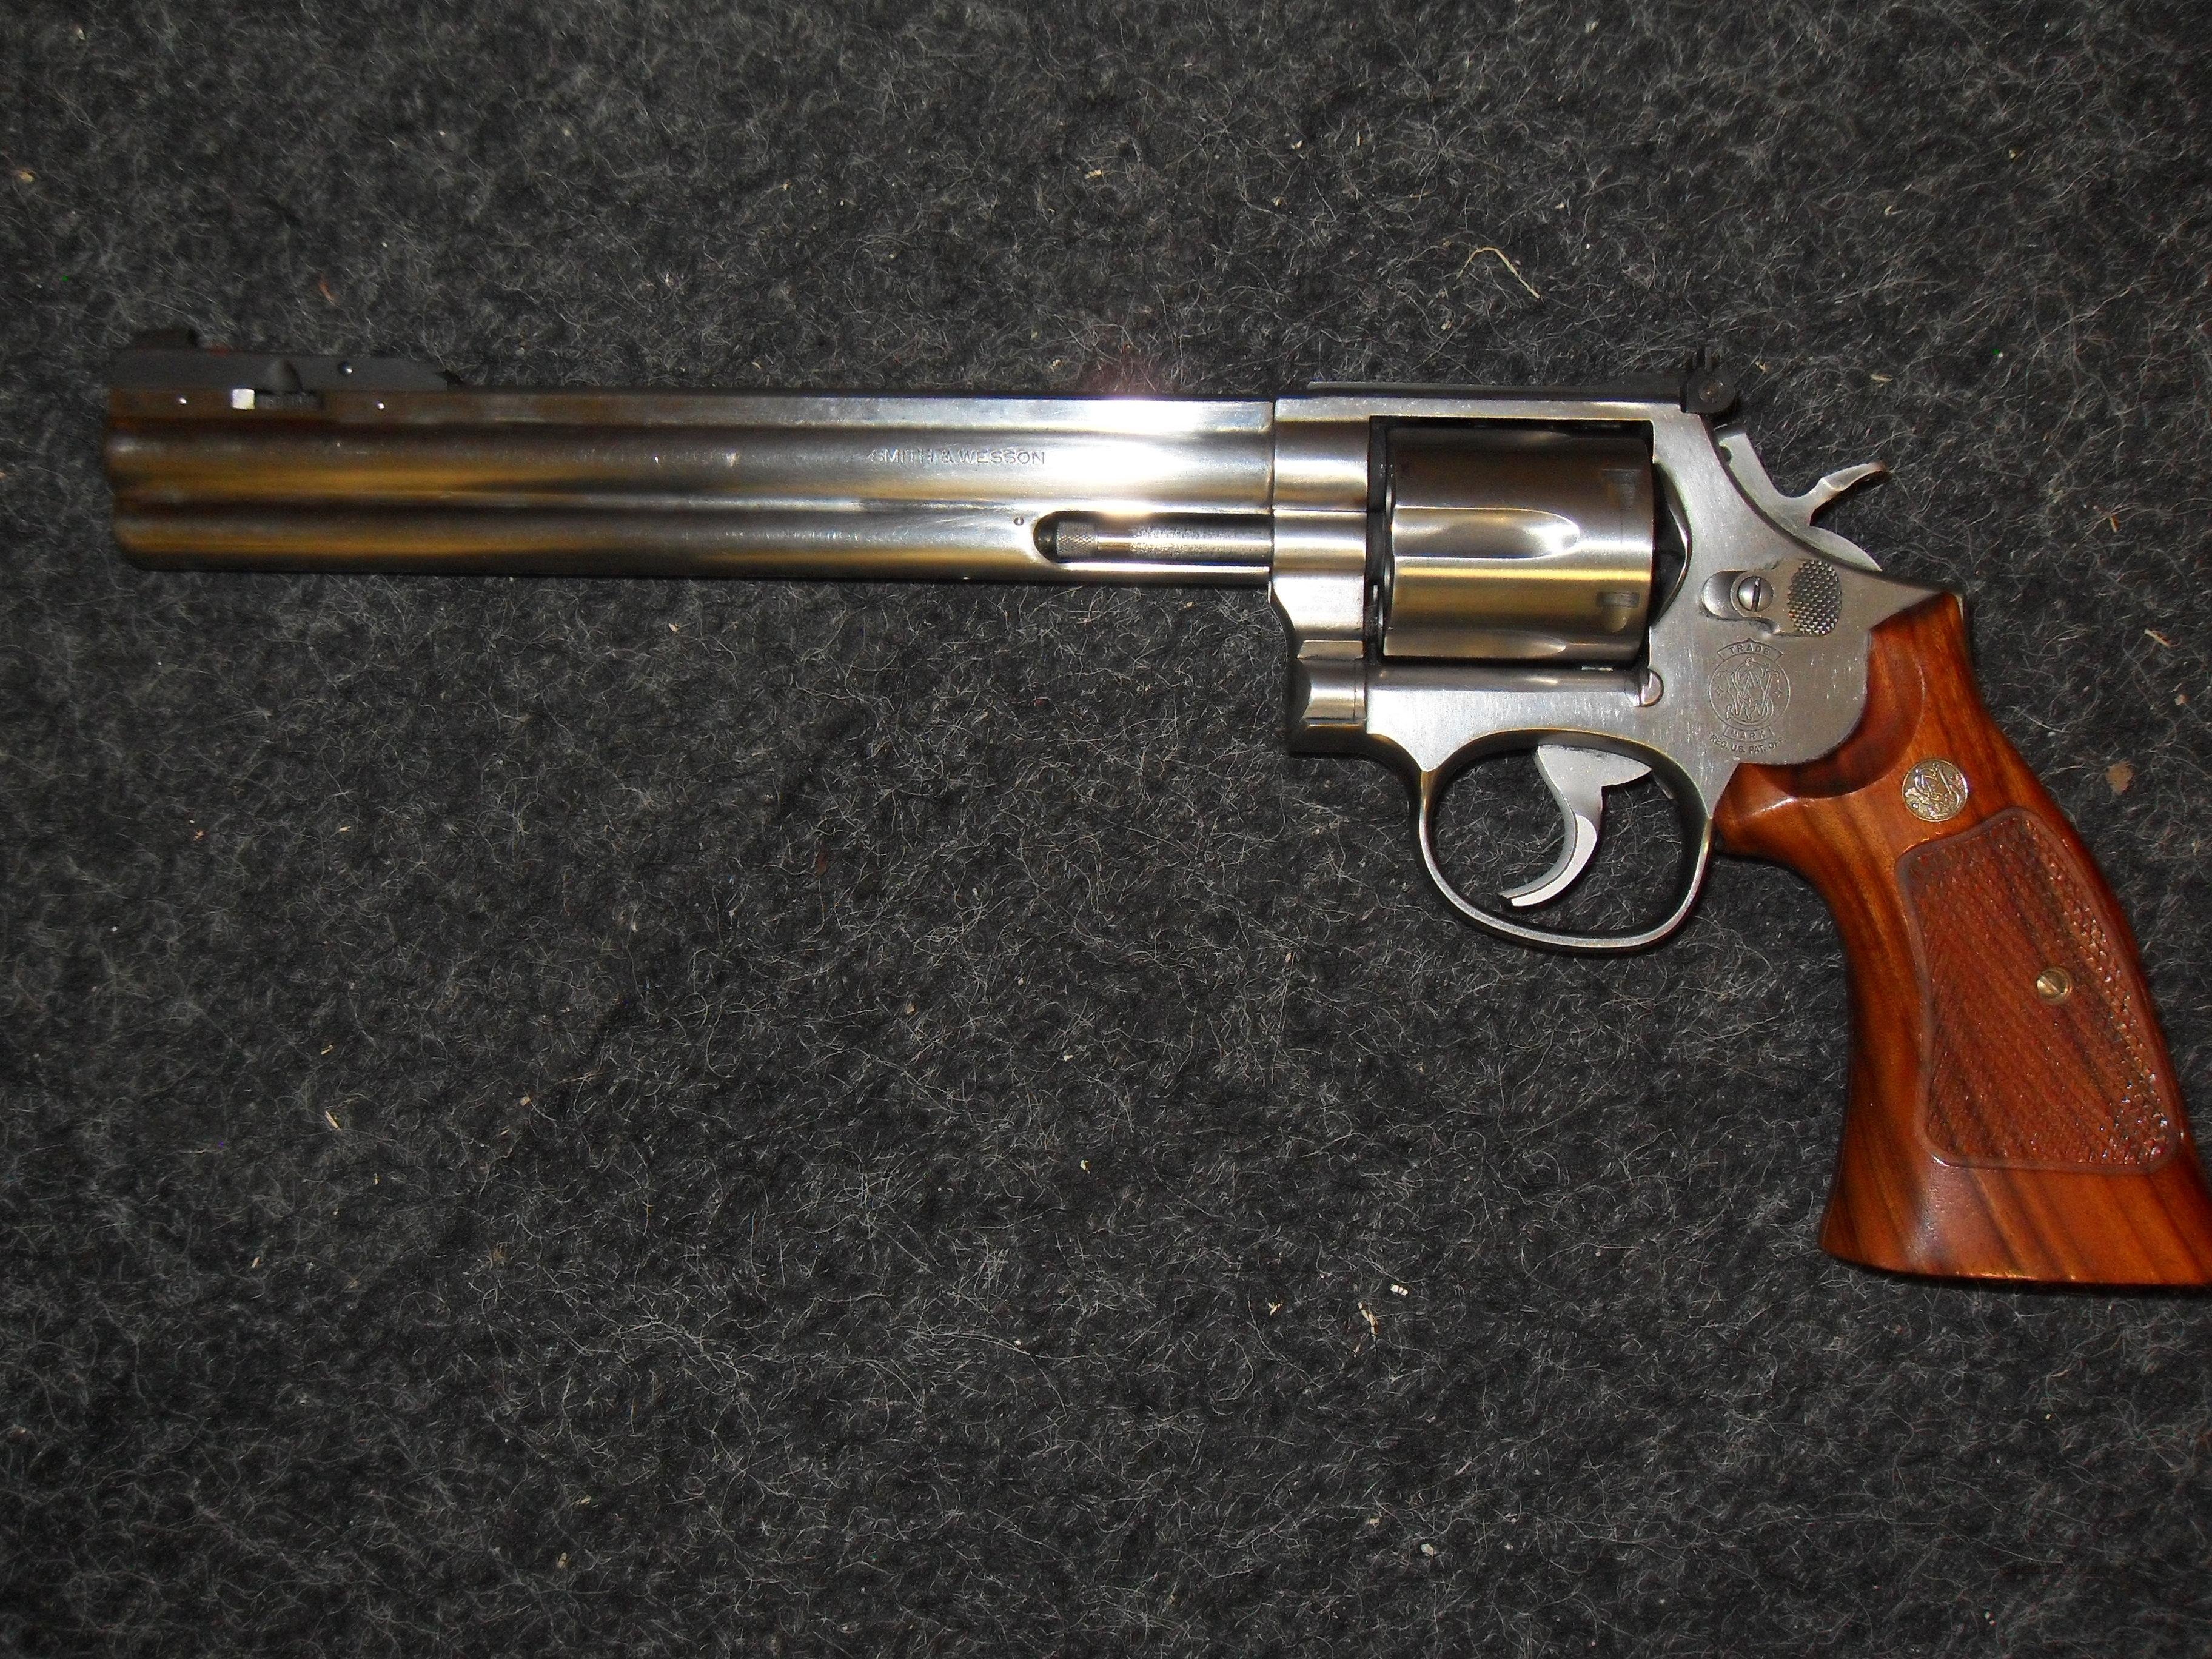 Smith & Wesson 686 Silhouette 8 3/8 AF  Guns > Pistols > Smith & Wesson Revolvers > Full Frame Revolver